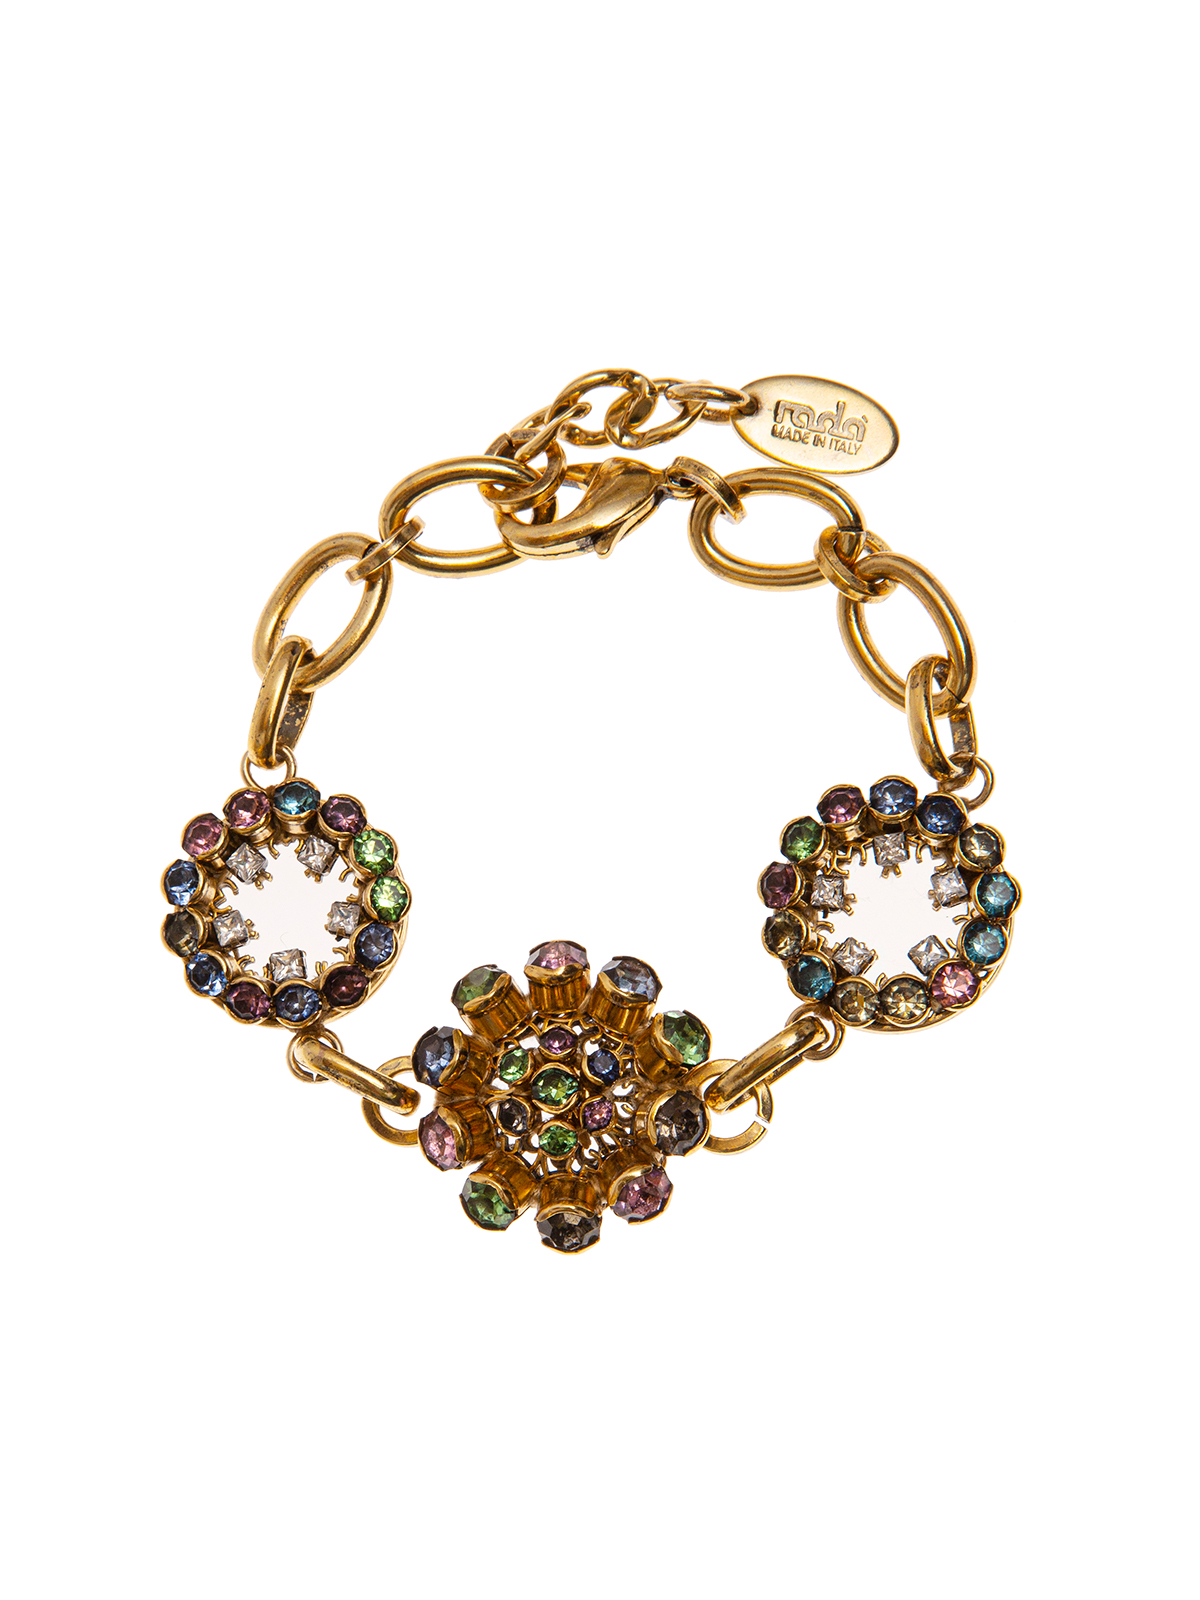 Chain bracelet embellished with filigrees and multicolor stones